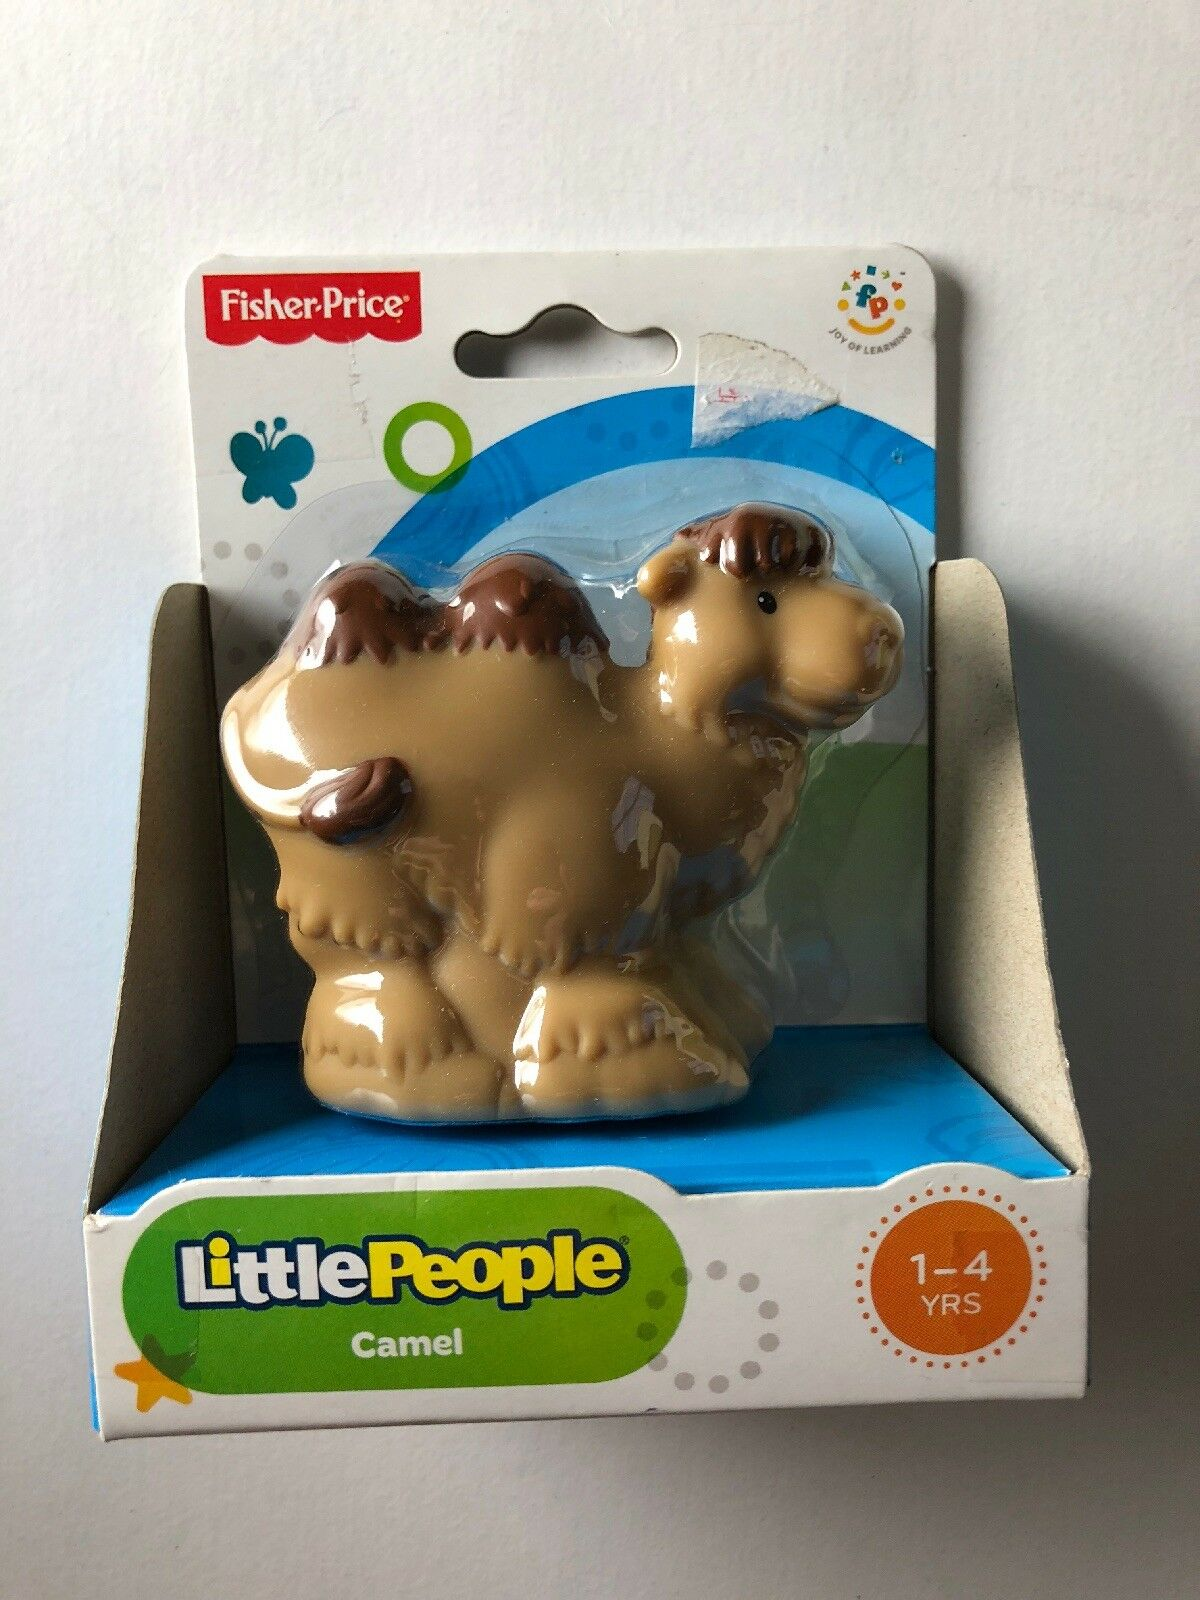 Little People Camel Animal Toy new in box